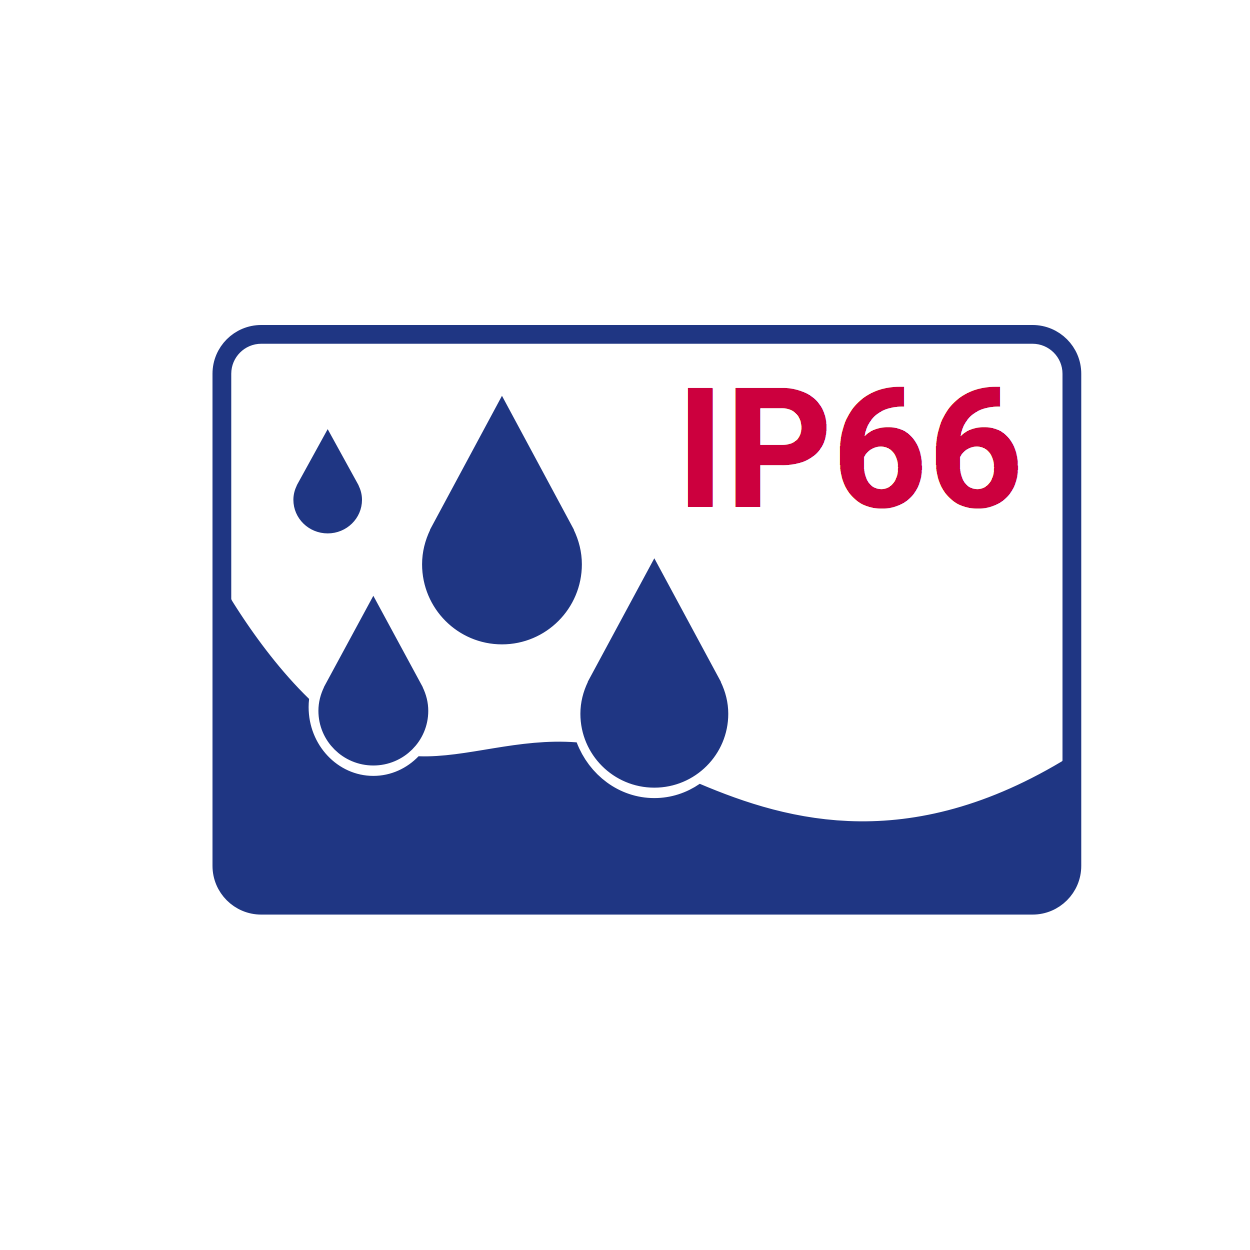 IP66_spec sheet icons (hilbert).png